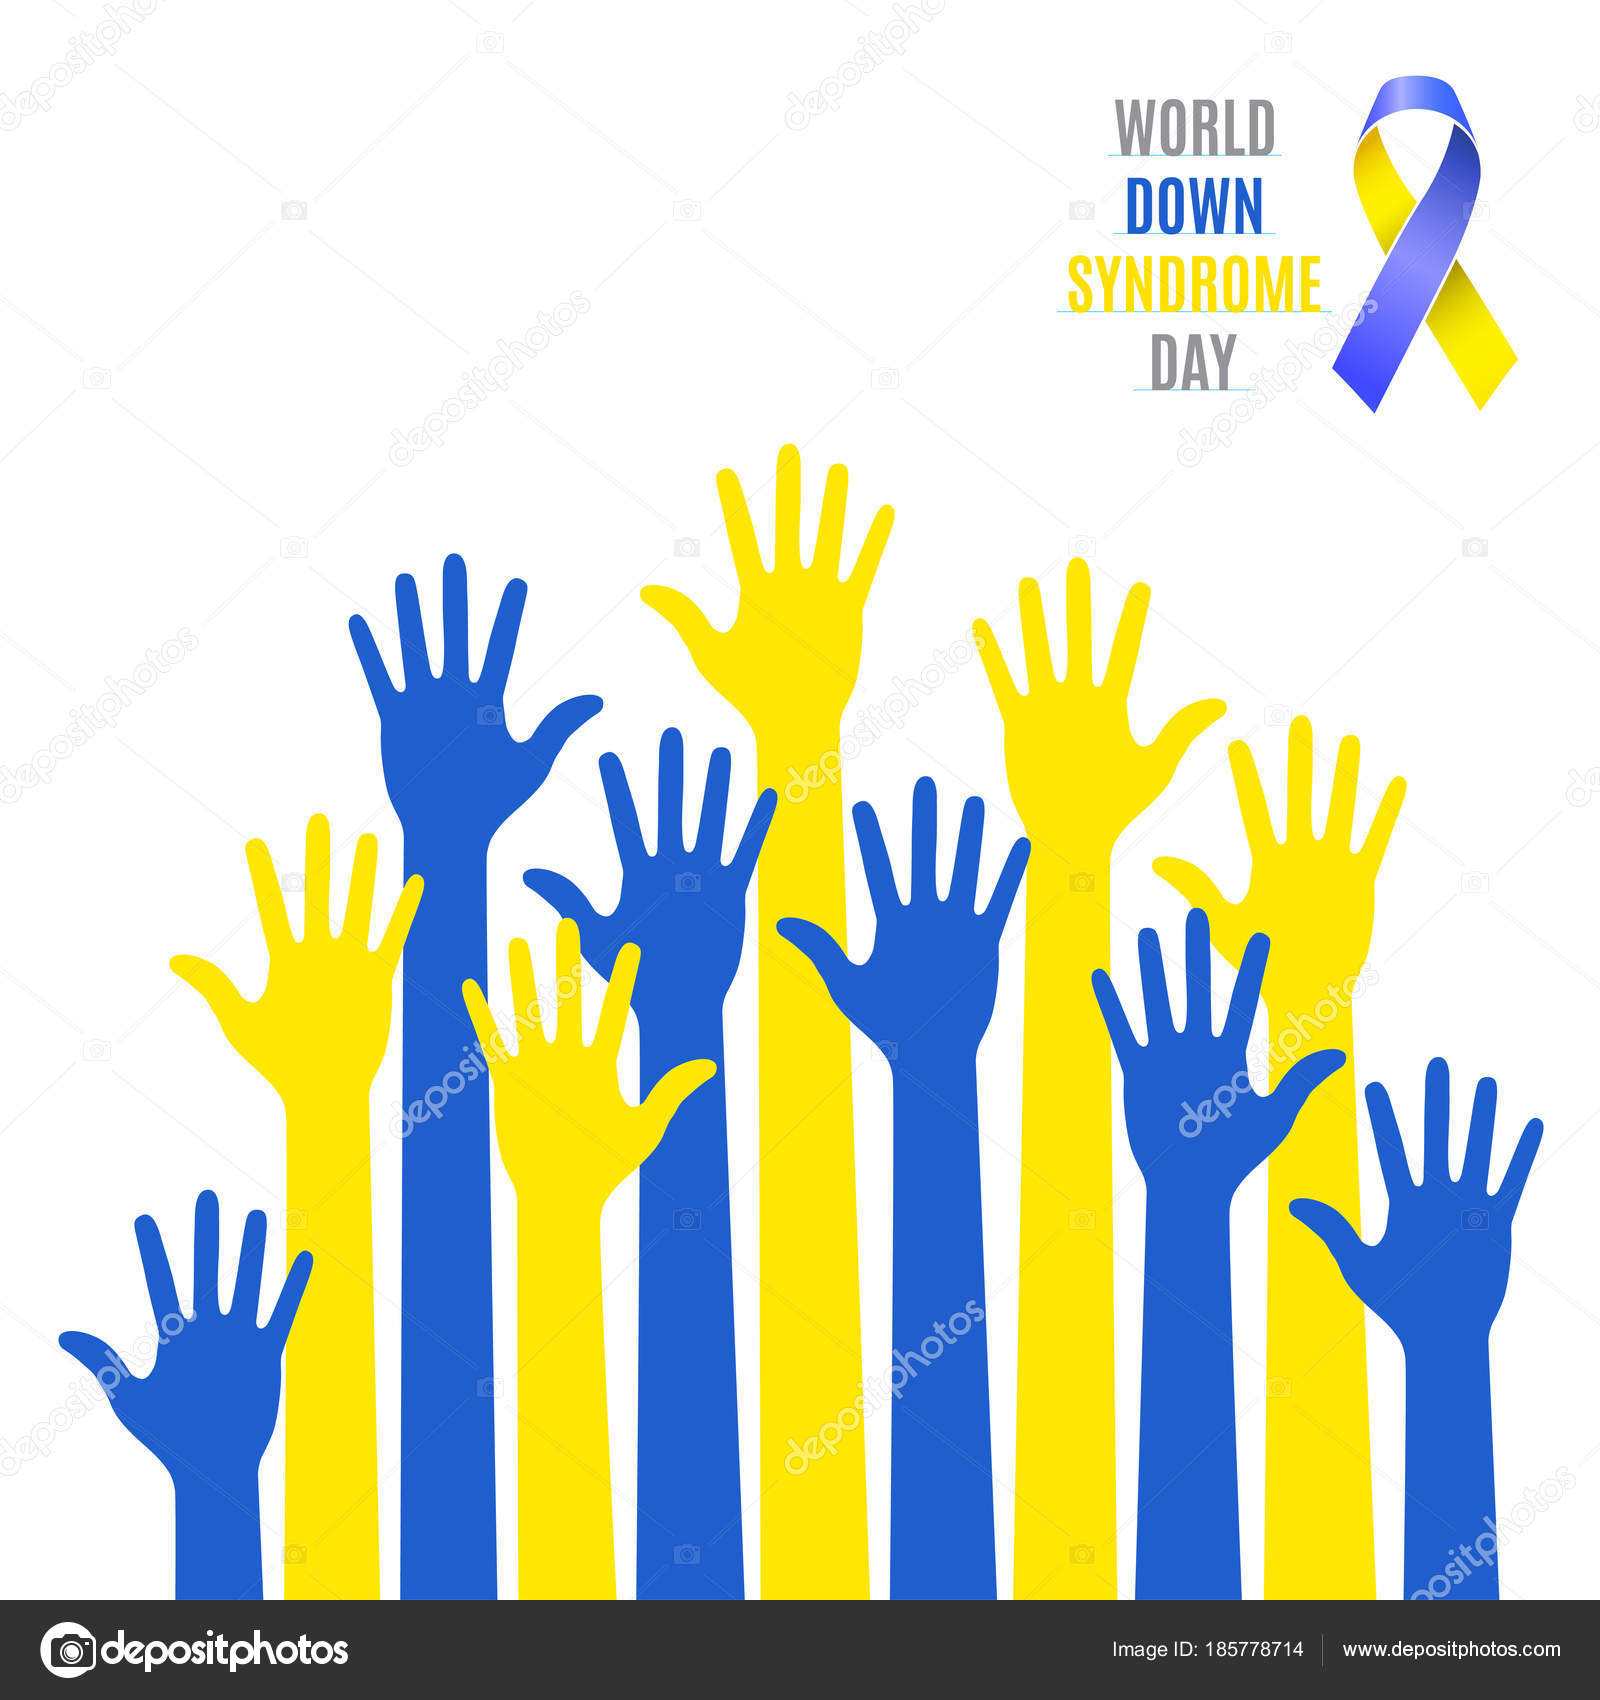 World down syndrome day poster blue yellow hands symbol with ribbon blue yellow hands symbol with ribbon icon isolated on white buycottarizona Image collections